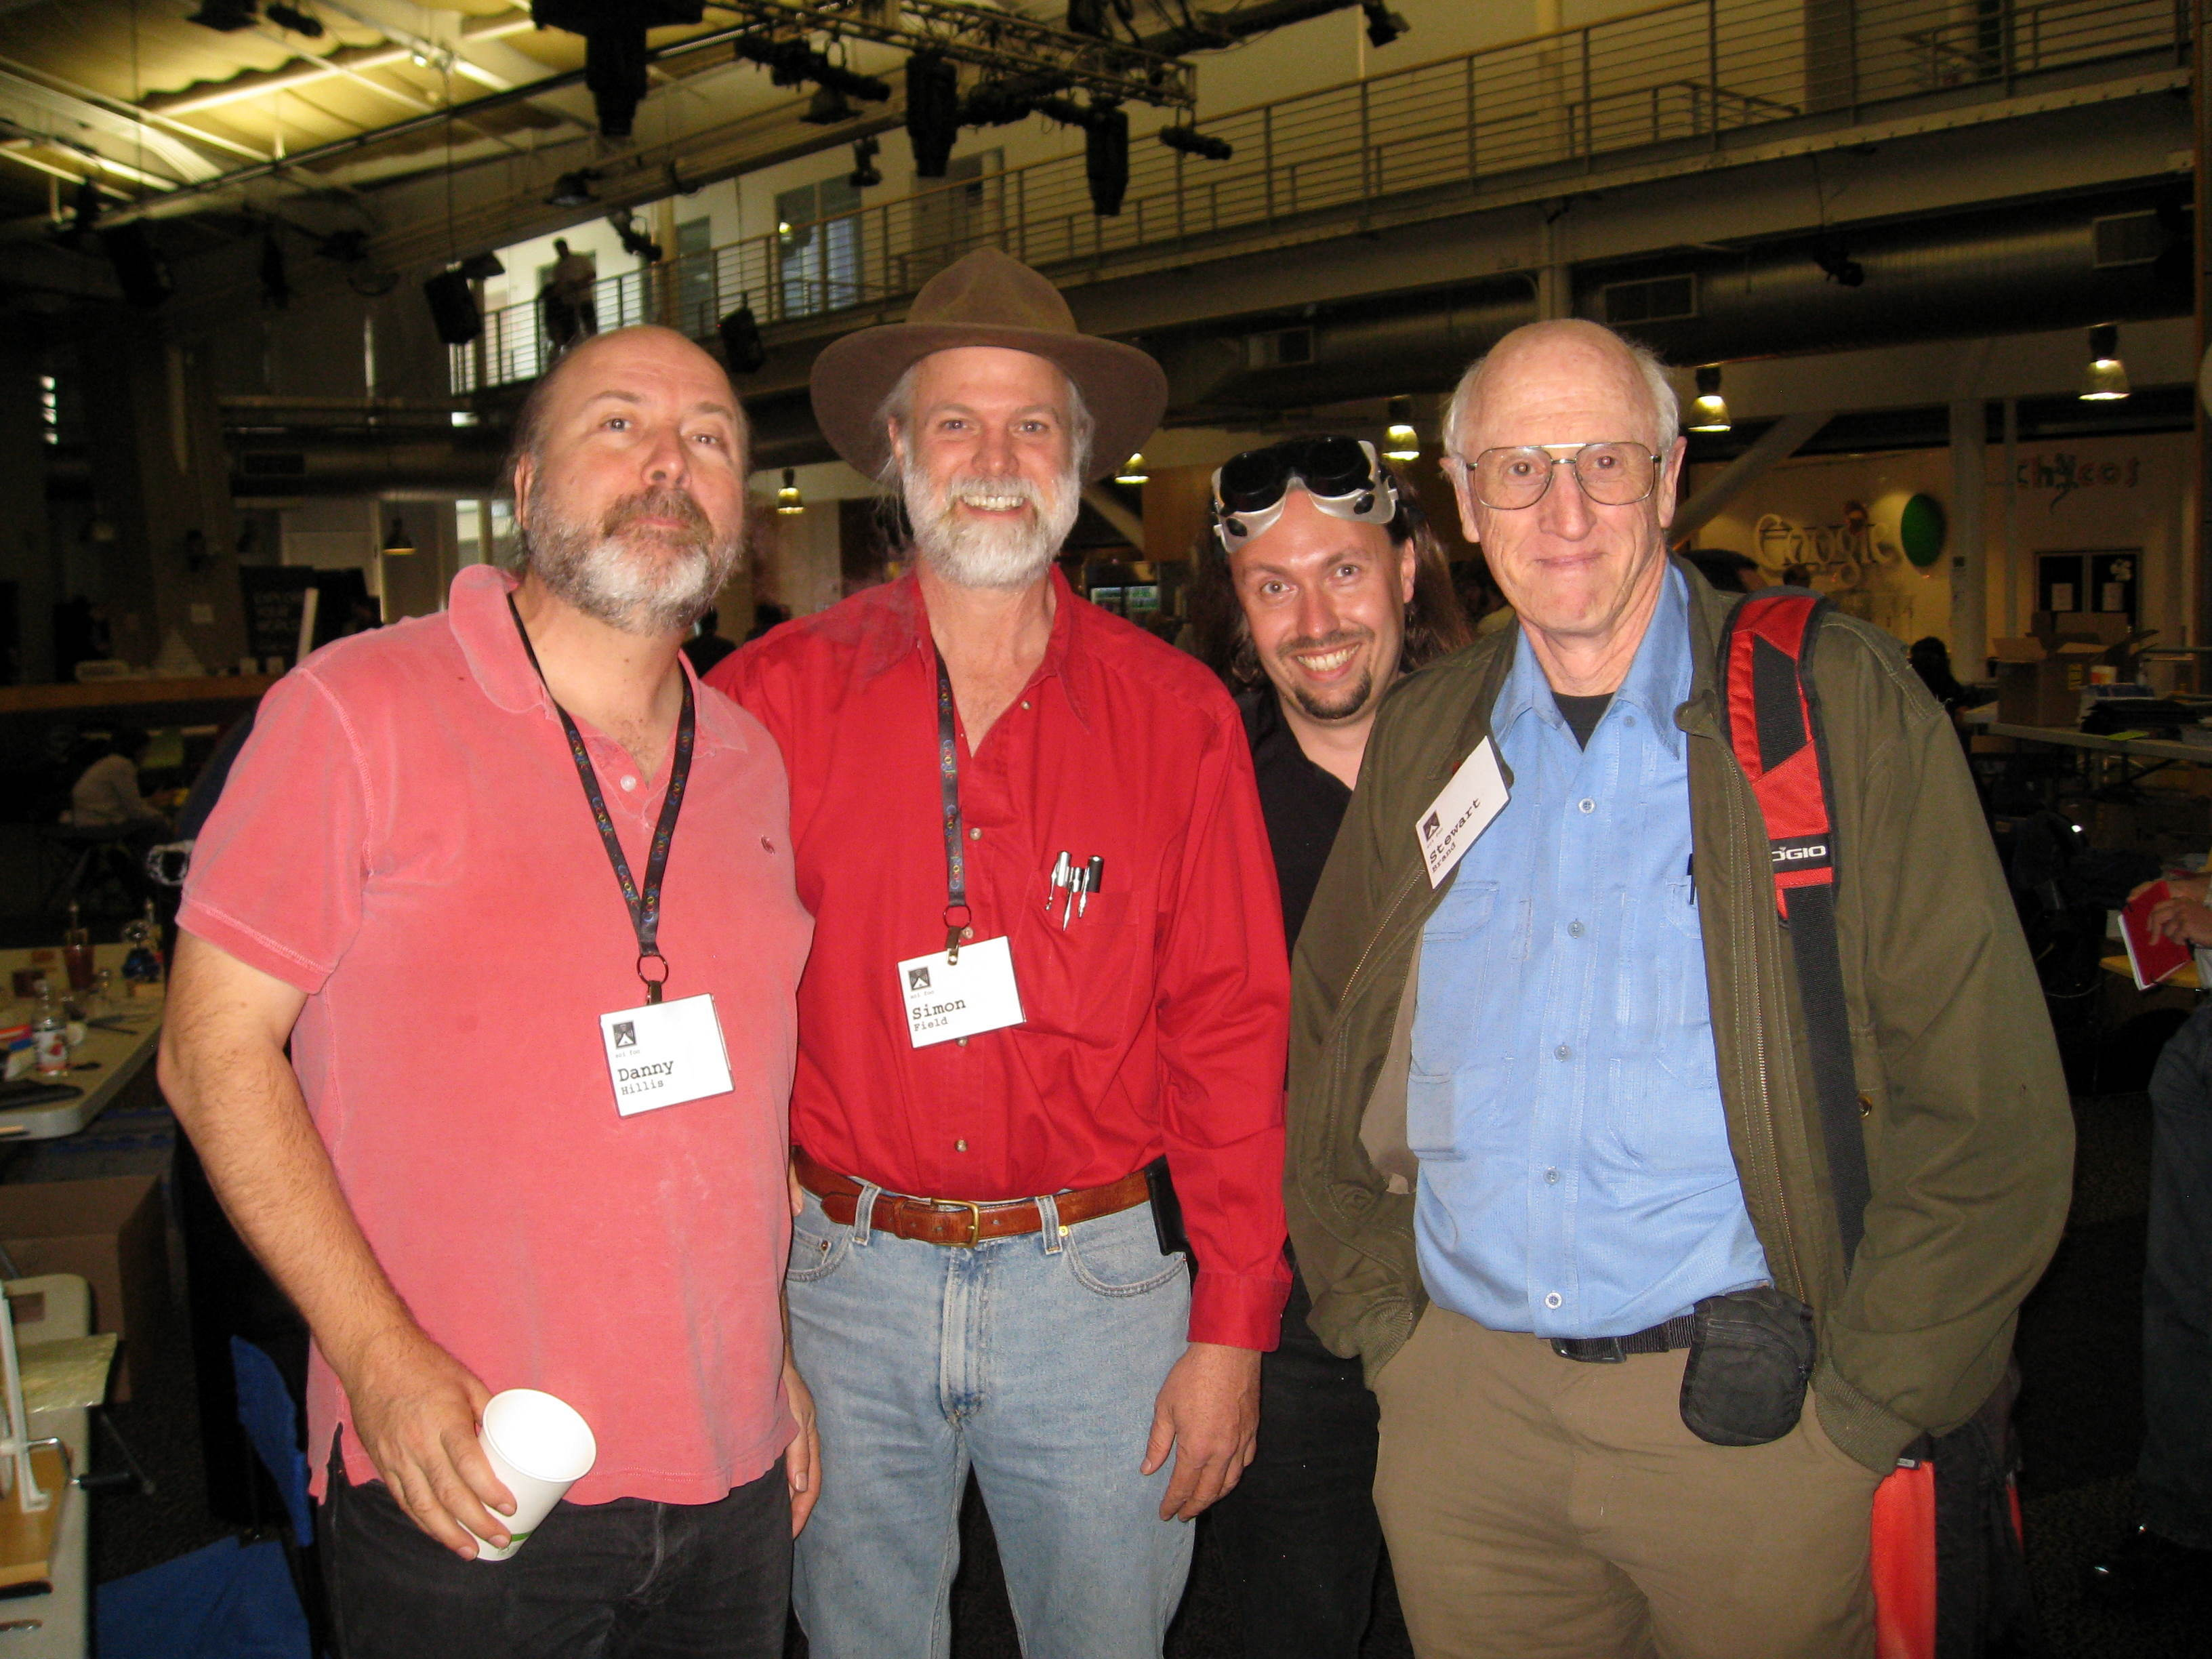 Danny Hillis, Simon Field, Paul Fenwick, and Stewart_Brand at SciFoo10